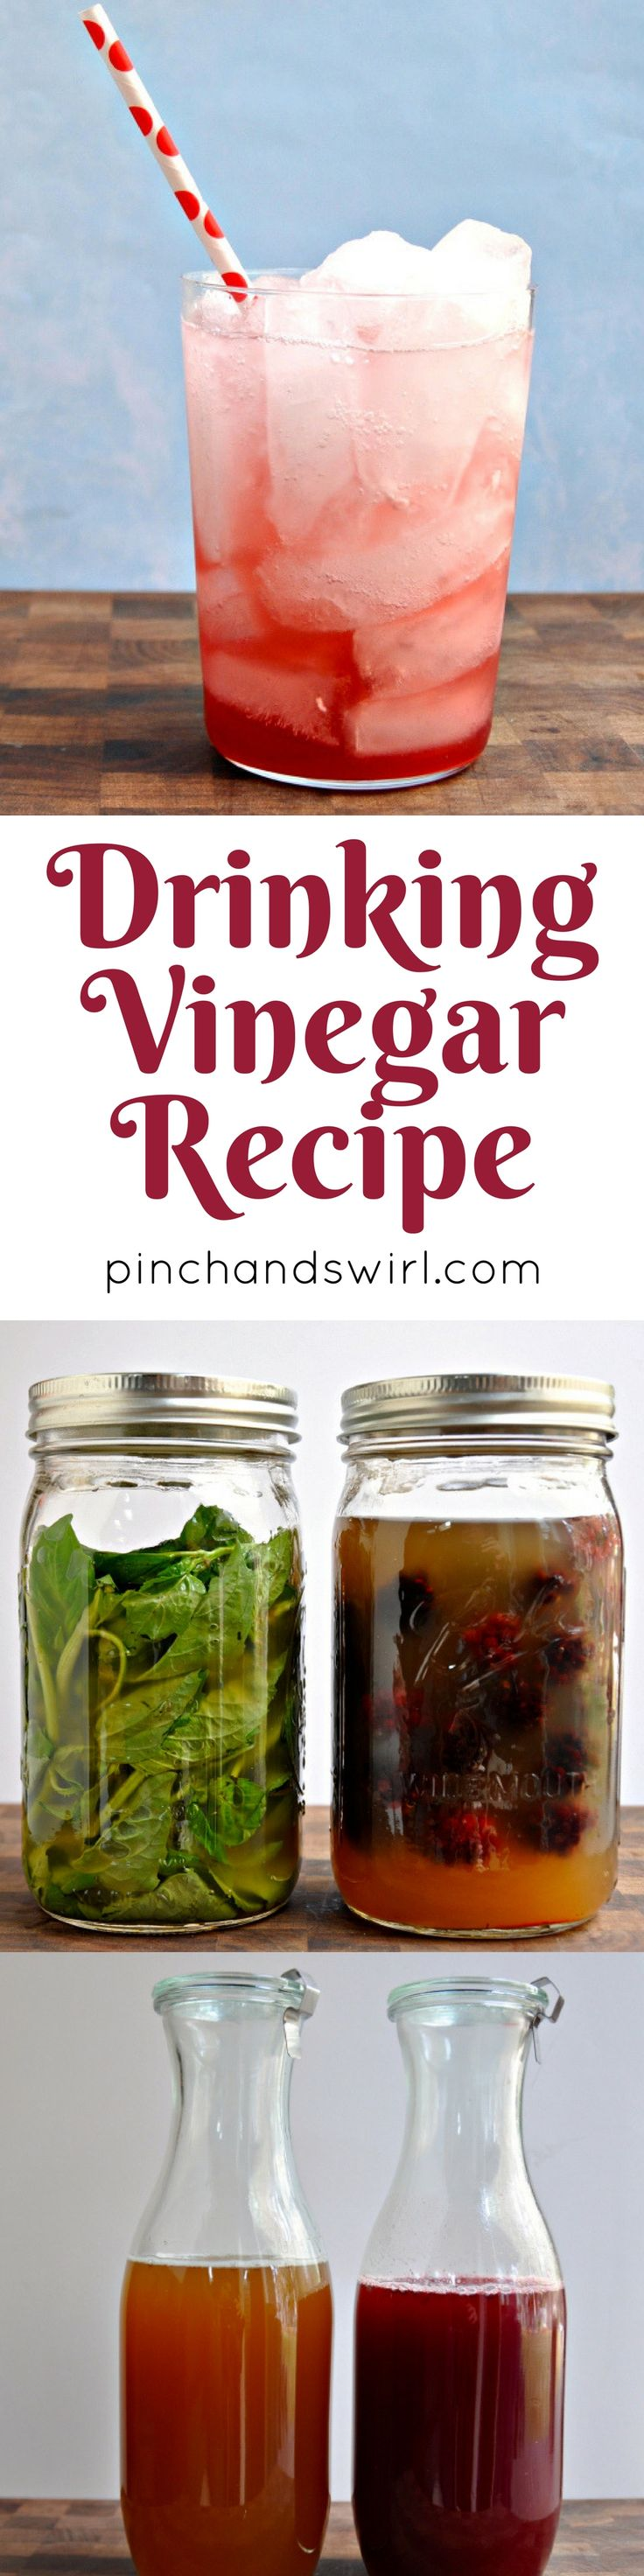 If you're looking for a drinking vinegar recipe, you've found it! Two versions: Thai Basil Drinking Vinegar and Marion Berry Drinking Vinegar.